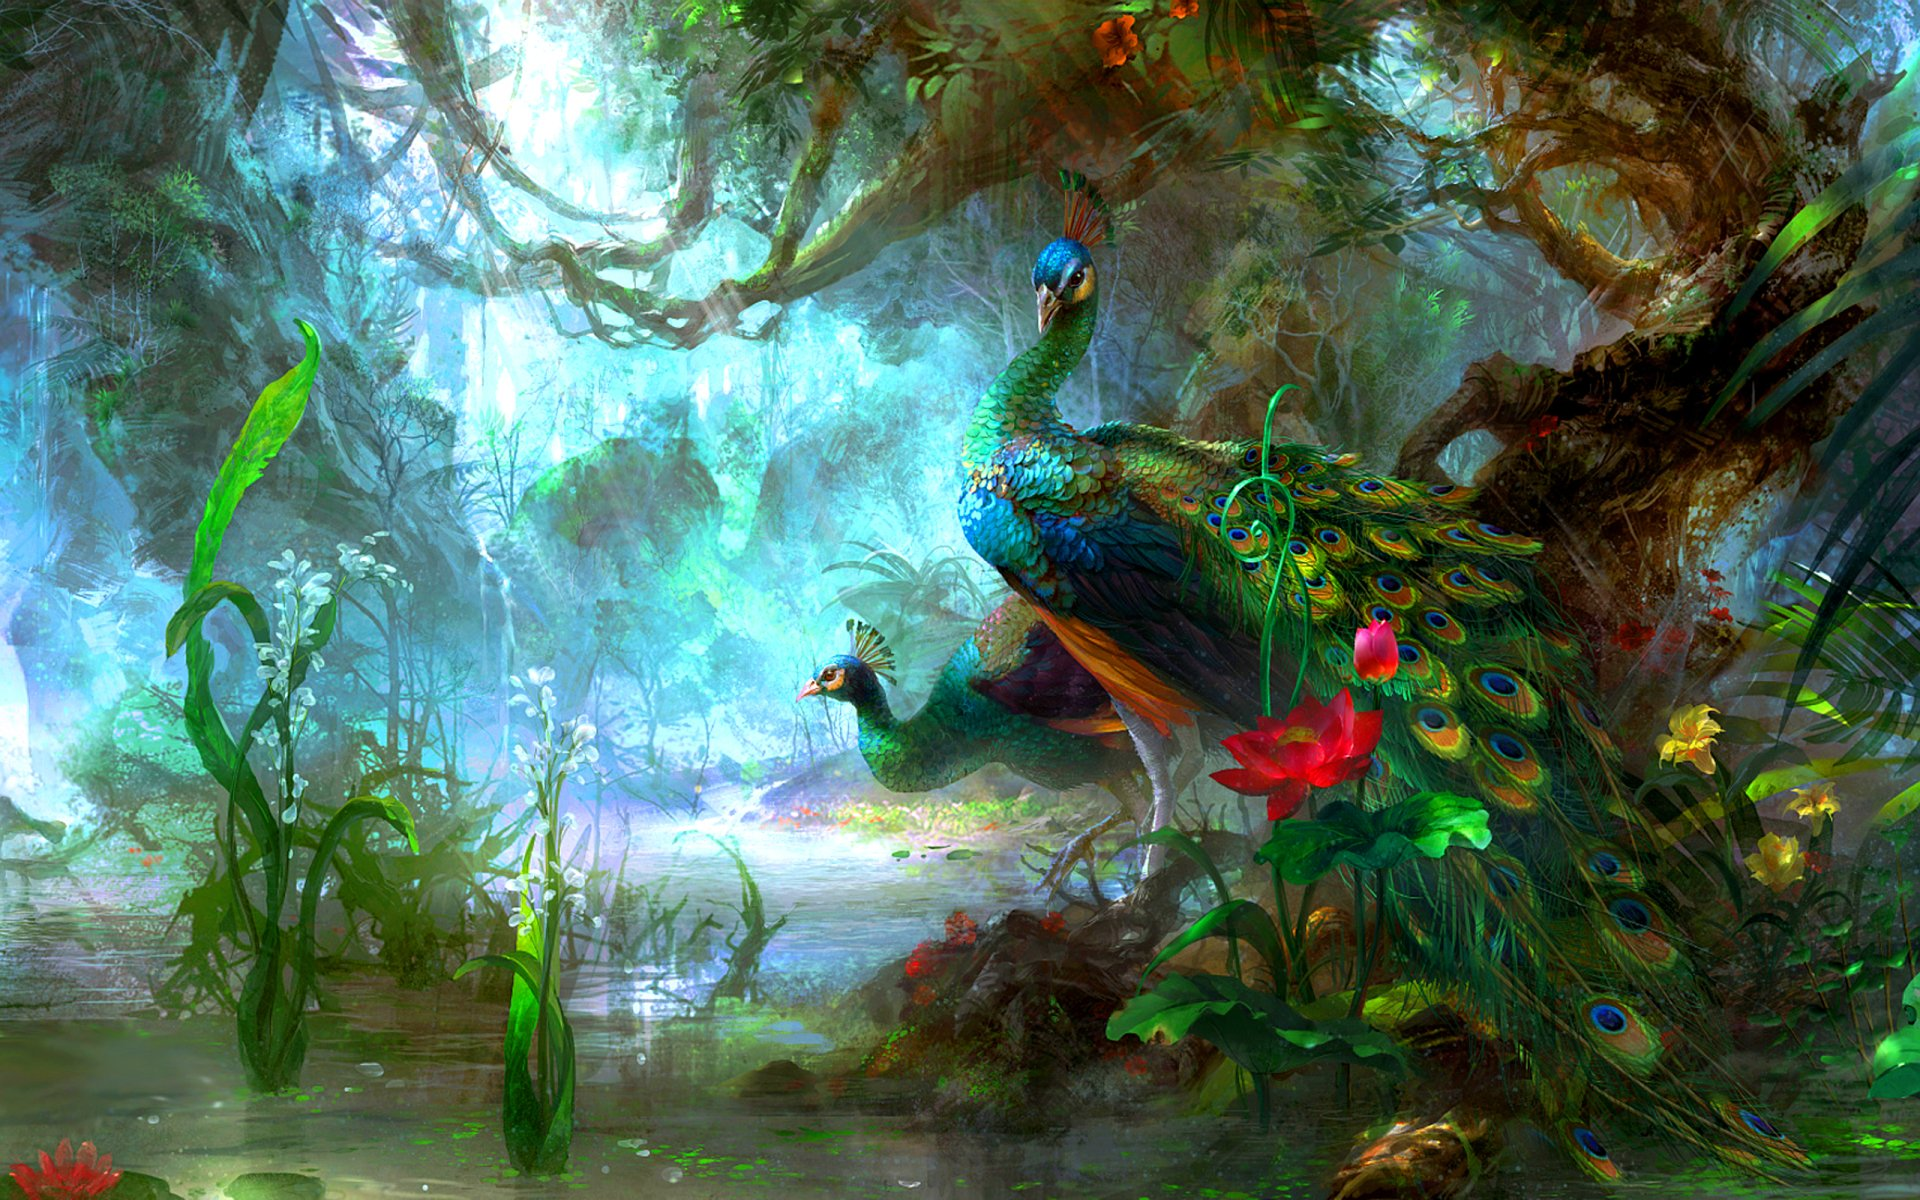 Animal - Peacock  Peafowl Colors Colorful Tree Flower Water Artistic Bird Forest Magical Green Wallpaper